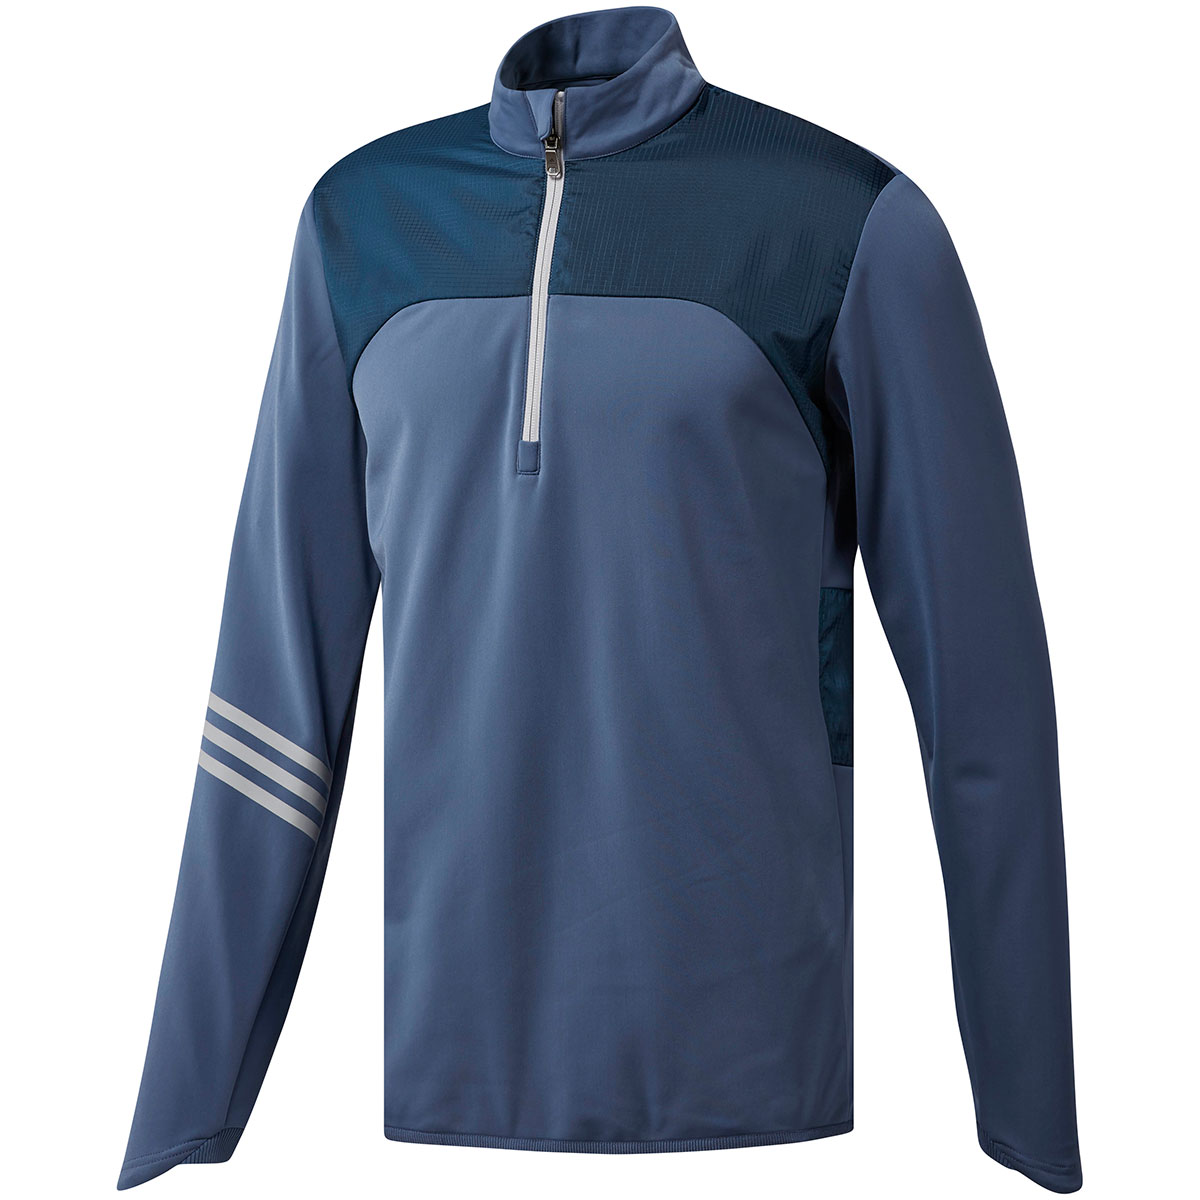 Coupe Vent adidas Golf Climaheat Frostguard 14 Zip